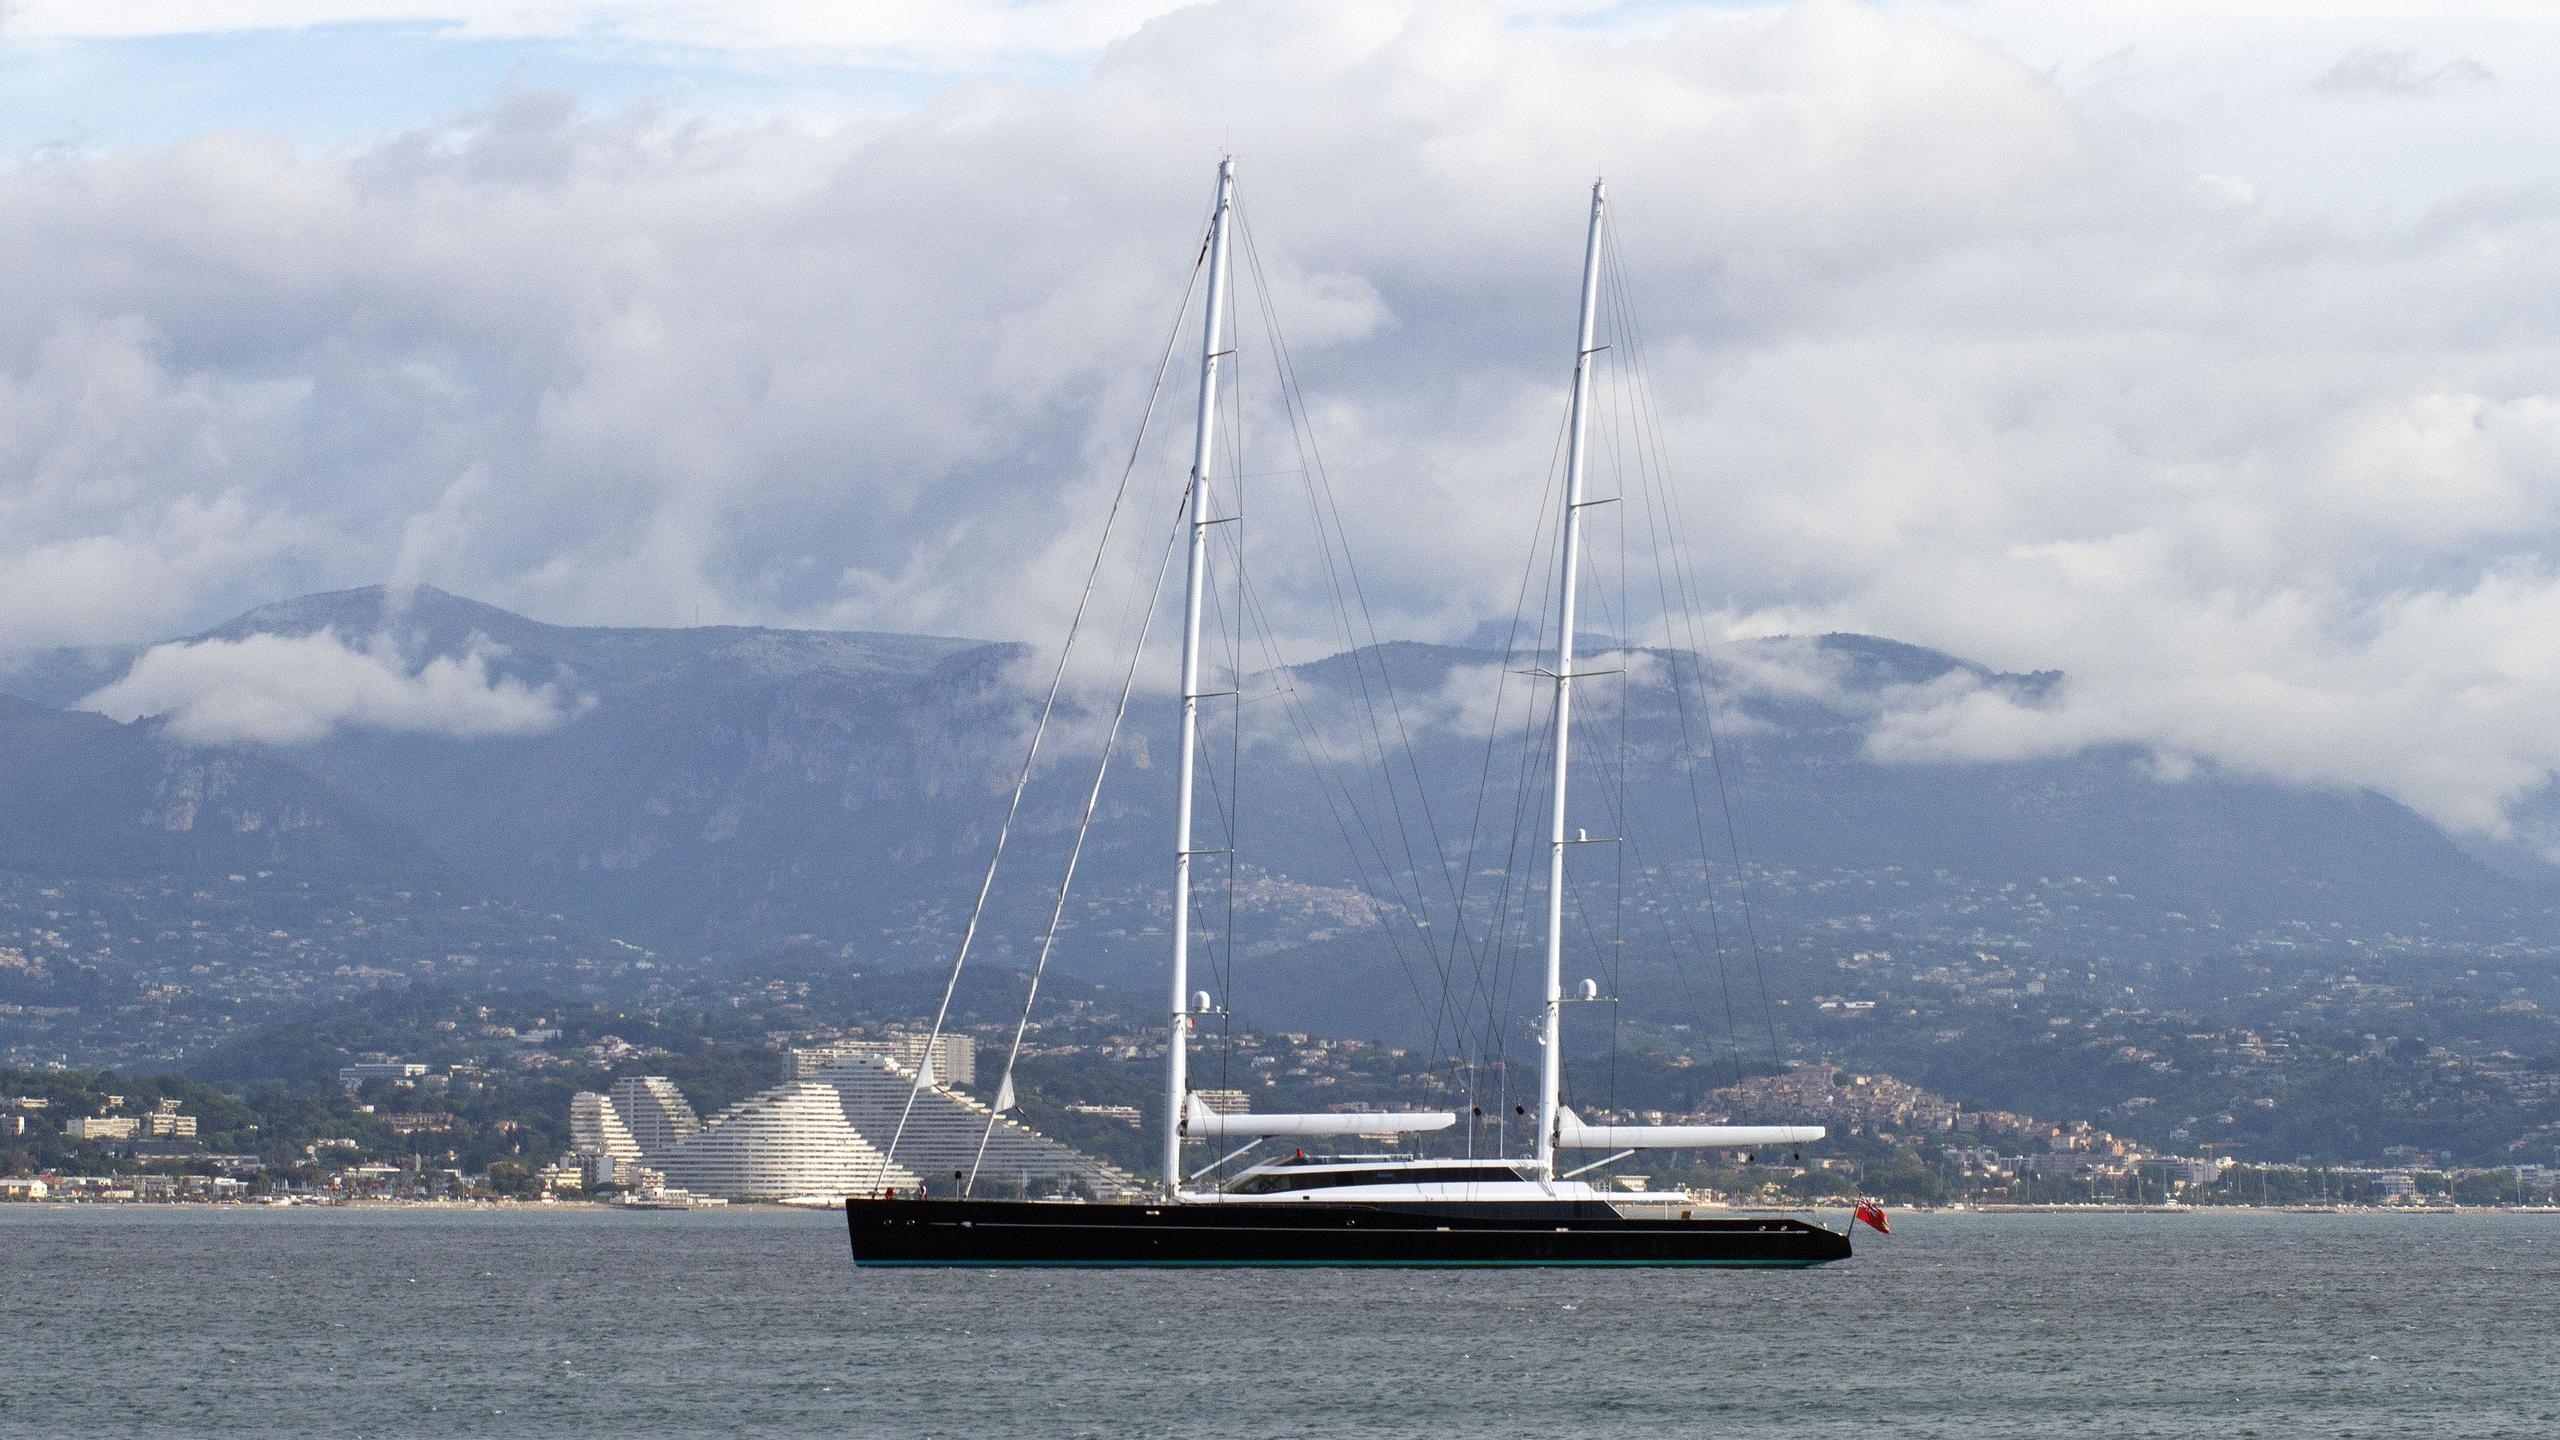 aquijo-sailing-yacht-vitters-oceanco-2015-86m-half-profile-with-masts